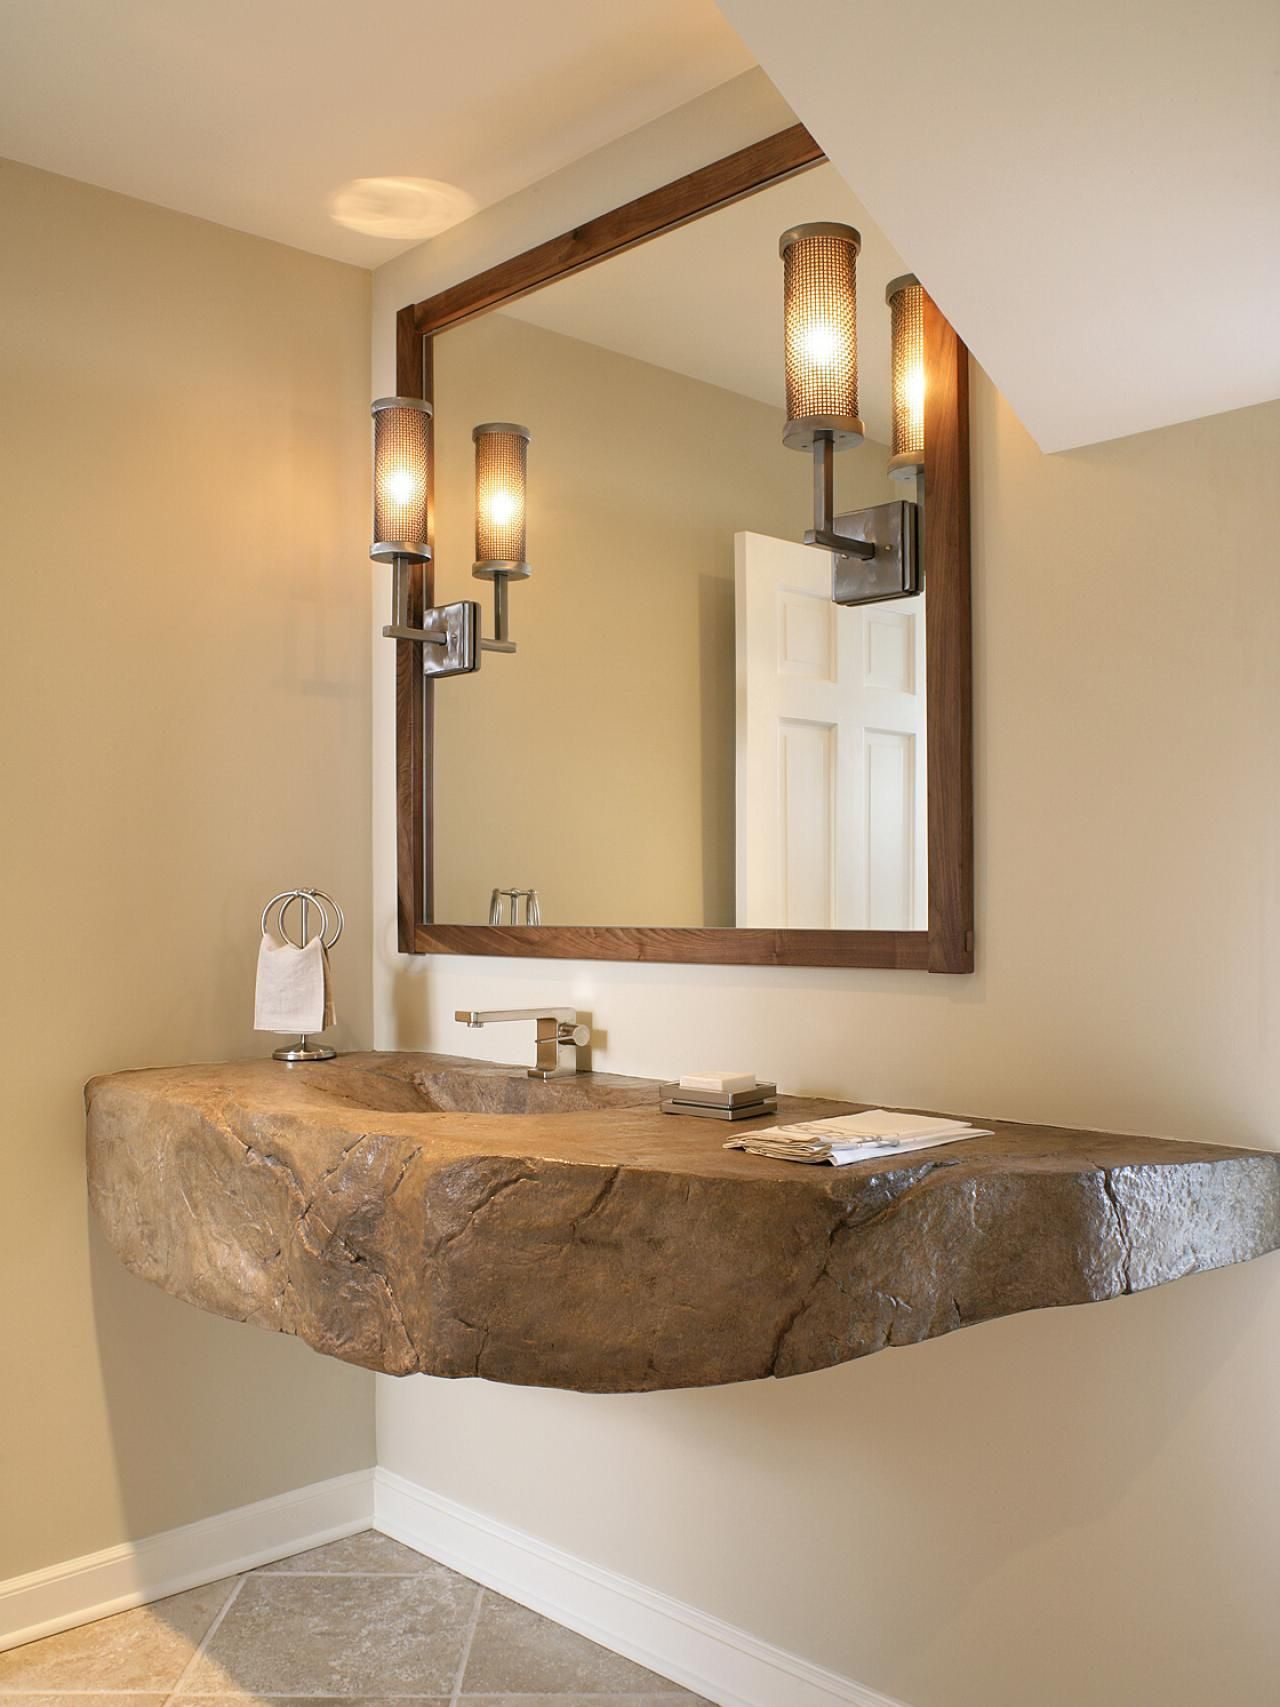 A Striking Unique Floating Vanity Made from Rock Accompanies A